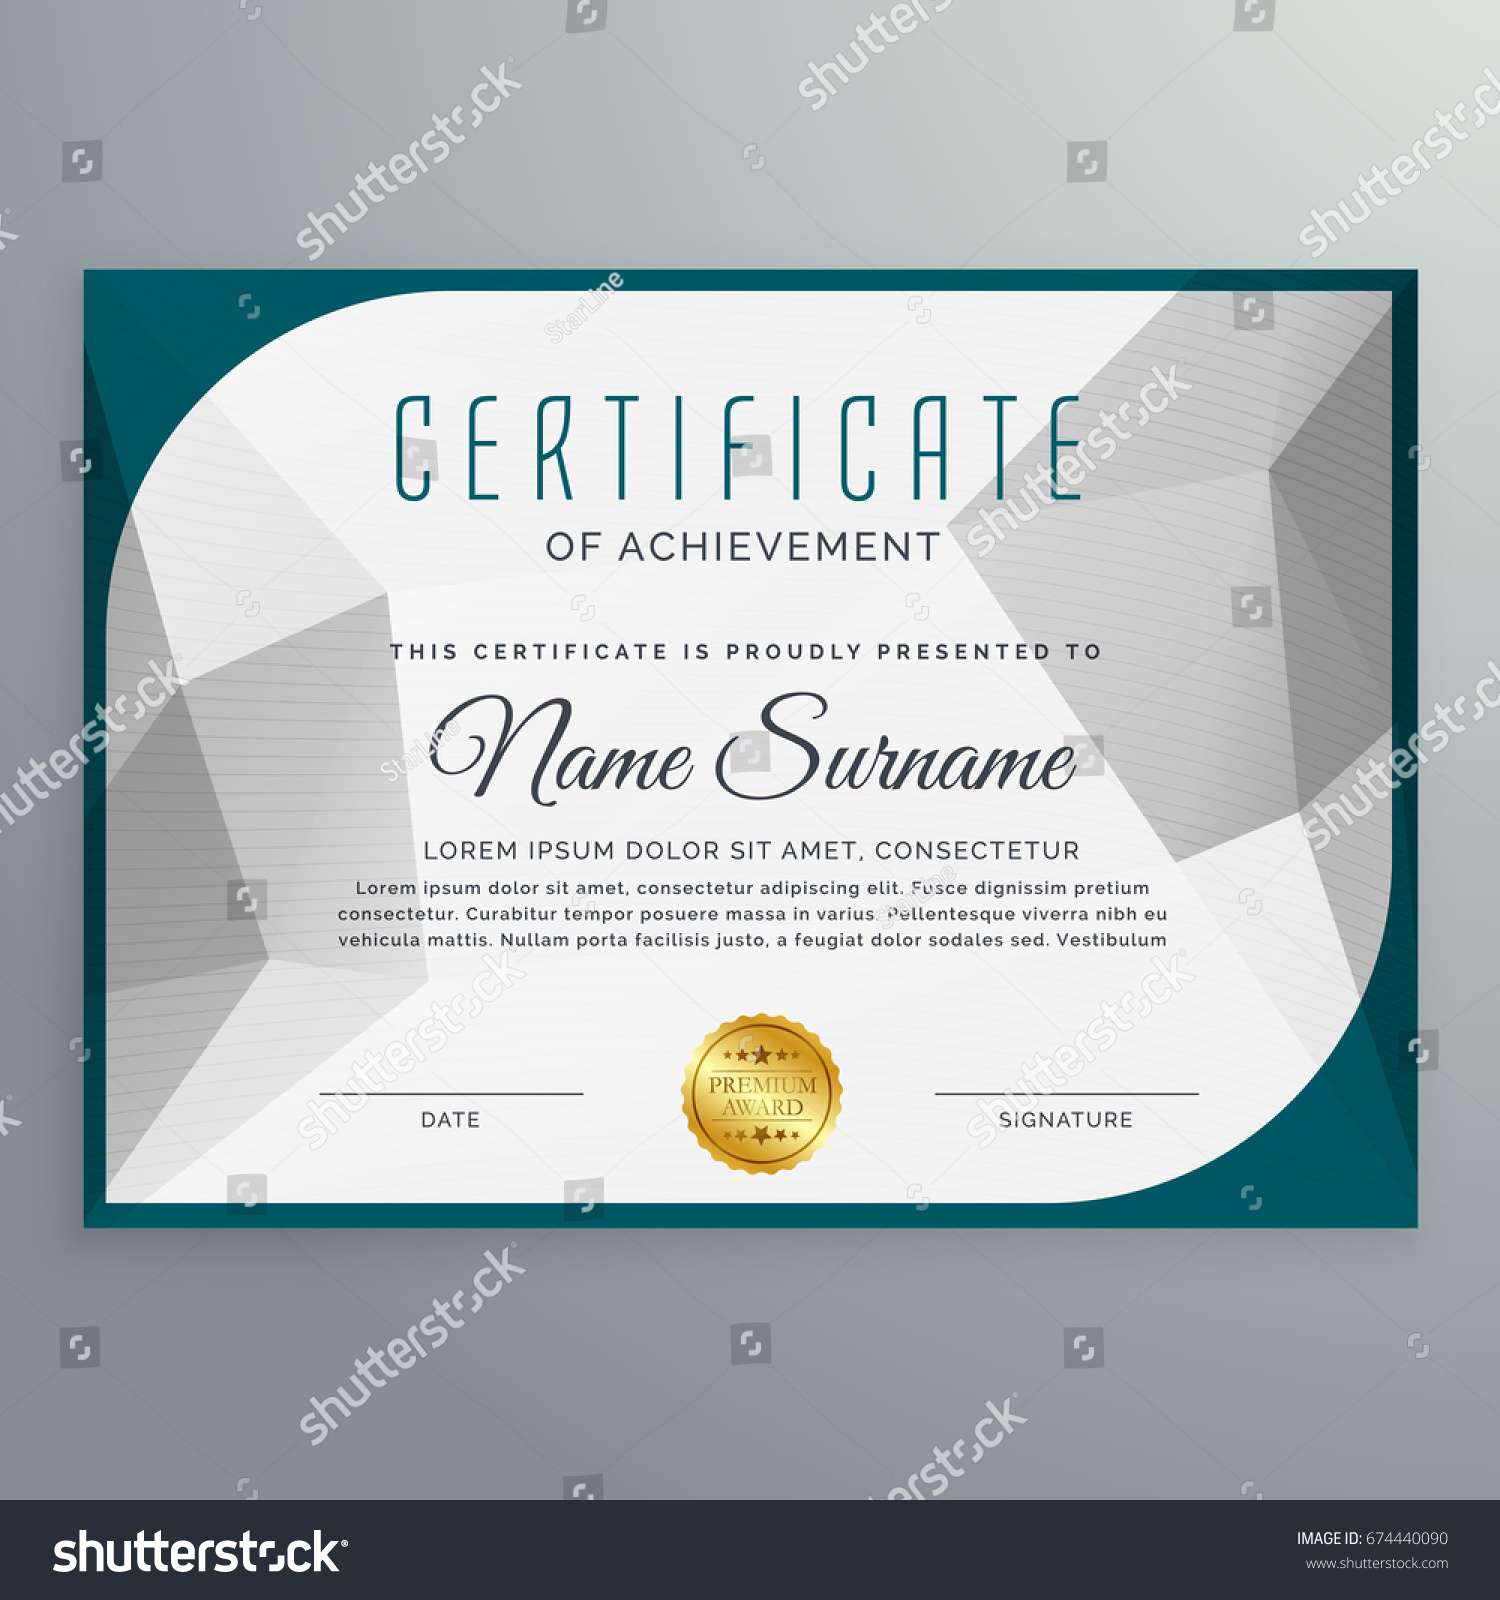 Creative Simple Certificate Design Template Abstract Stock Vector